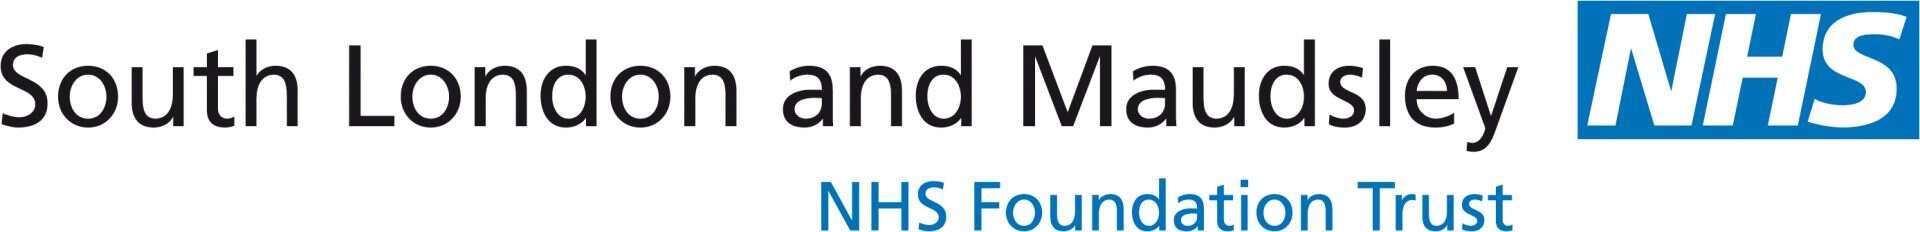 learning event, South London and Maudsley NHS Launch Events, Video Arts